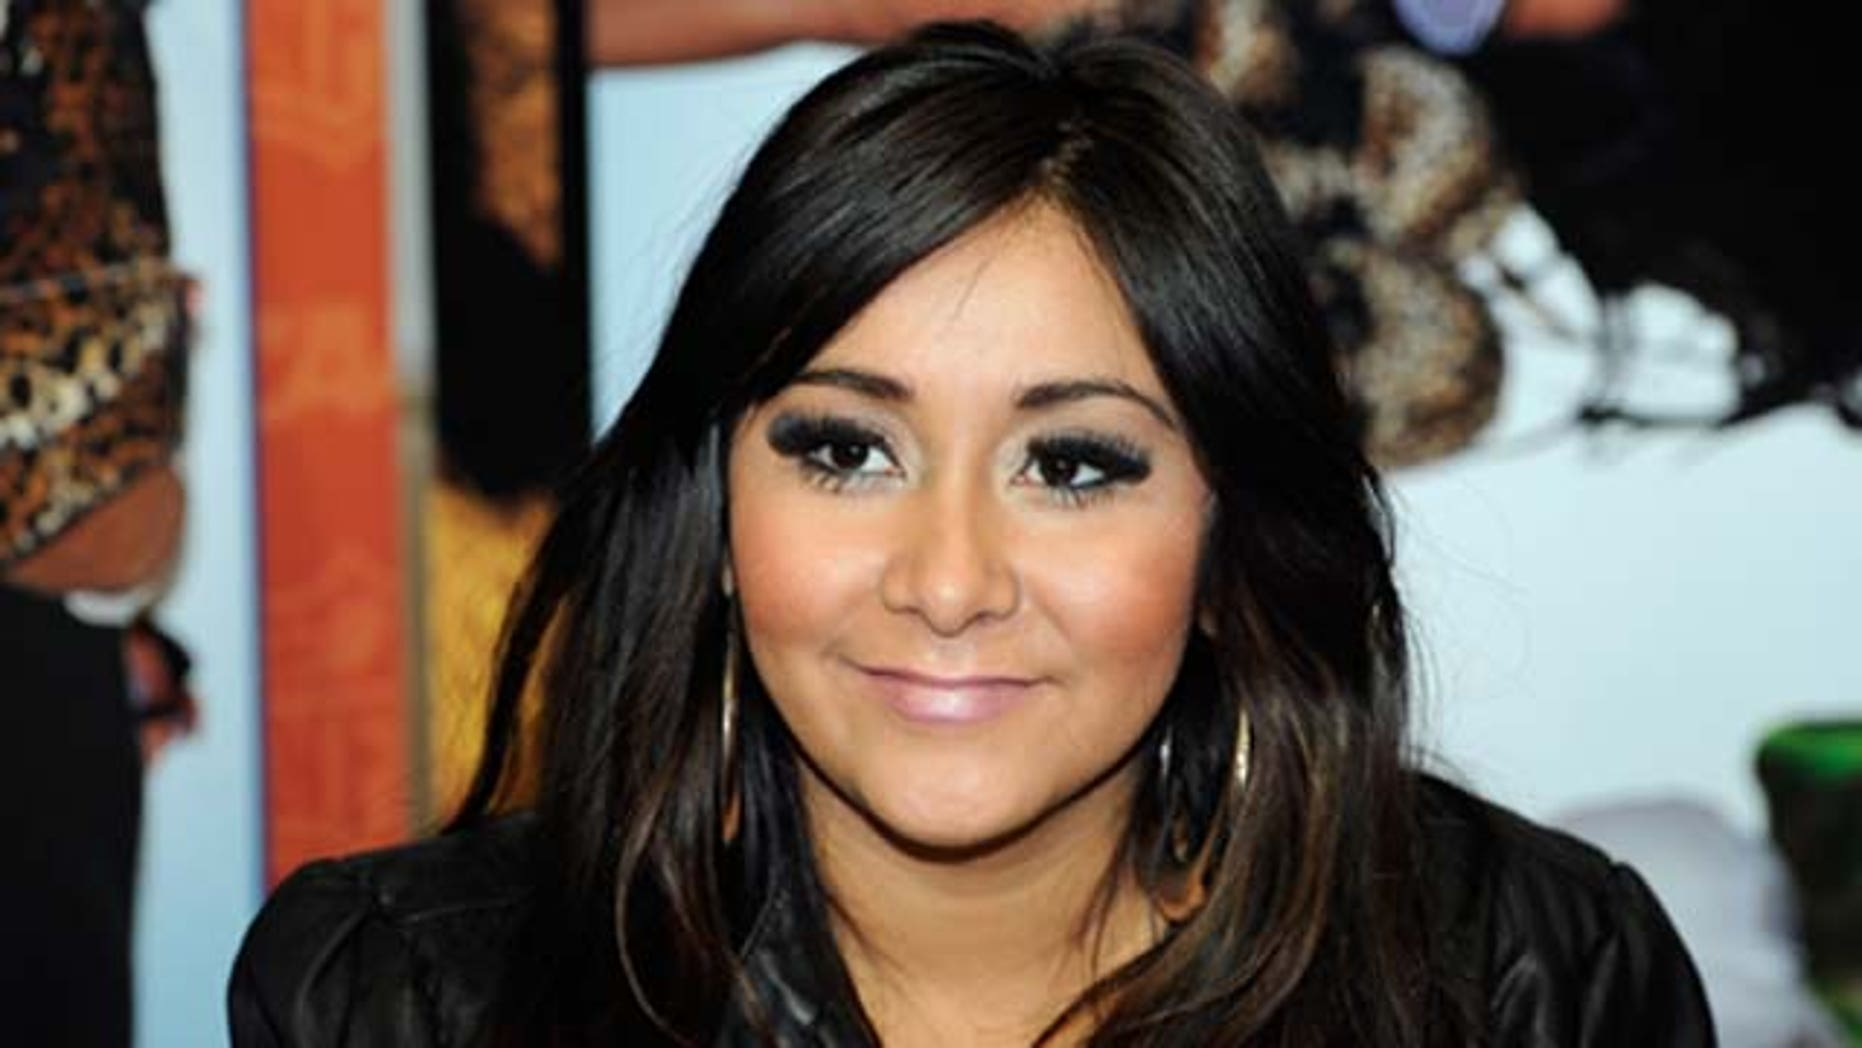 """Television personality Nicole """"Snooki"""" Polizzi promotes her Snooki Slippers line licensed by Happy Feet at the MAGIC clothing industry convention at the Las Vegas Convention Center February 15, 2011 in Las Vegas, Nevada."""